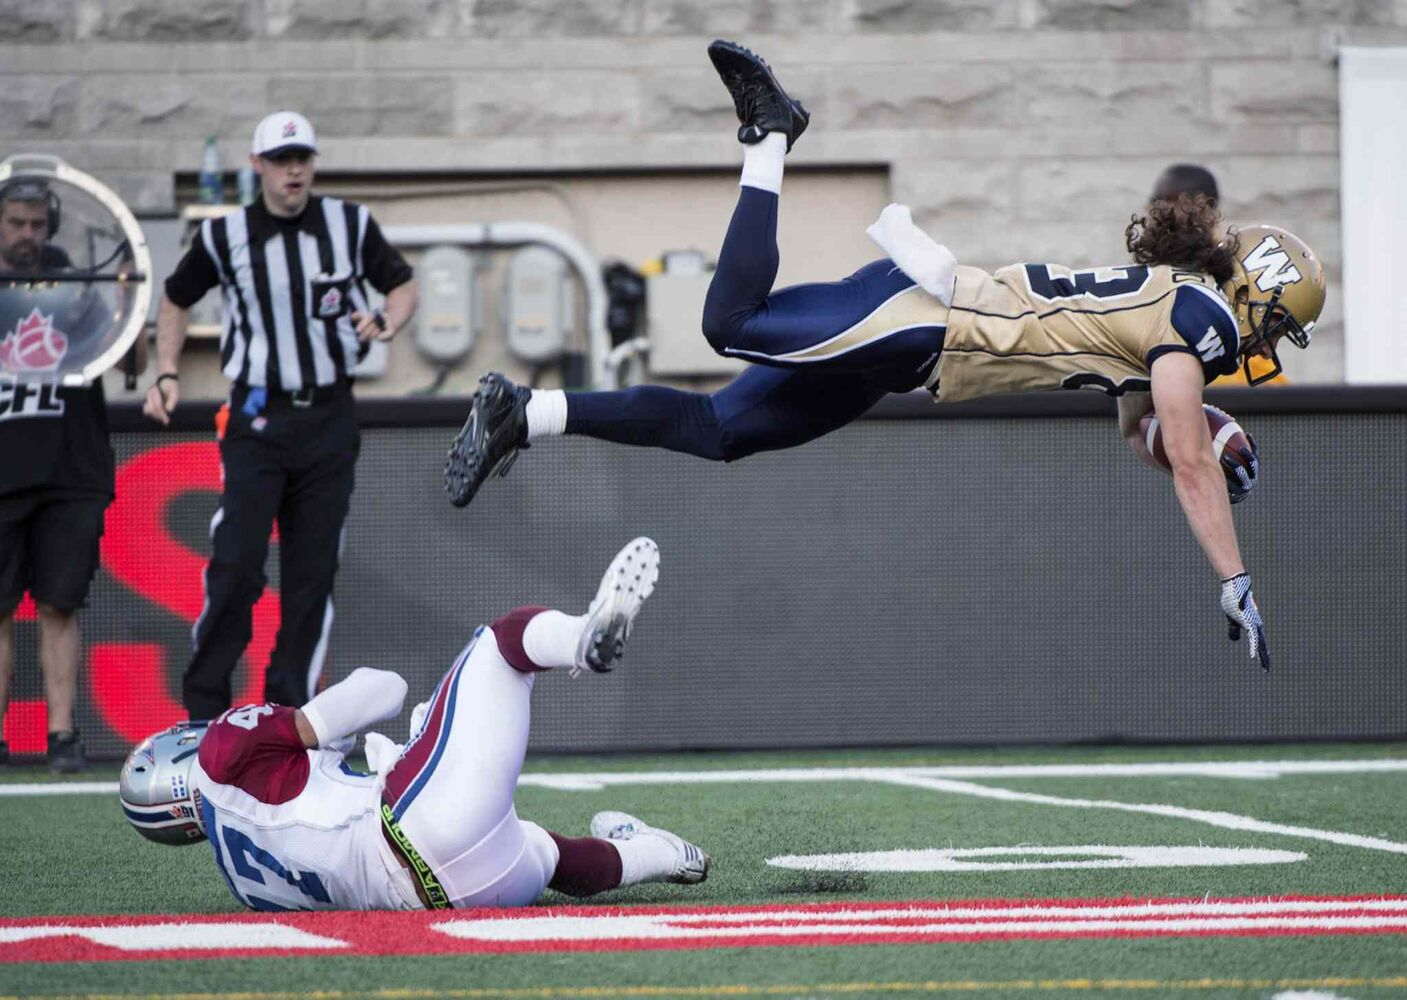 Winnipeg Blue Bombers' wide receiver Julian Feoli-Gudino flies over Montreal Alouettes' defensive back Jamaan Webb during first quarter CFL football action Friday, July 11, 2014 in Montreal.